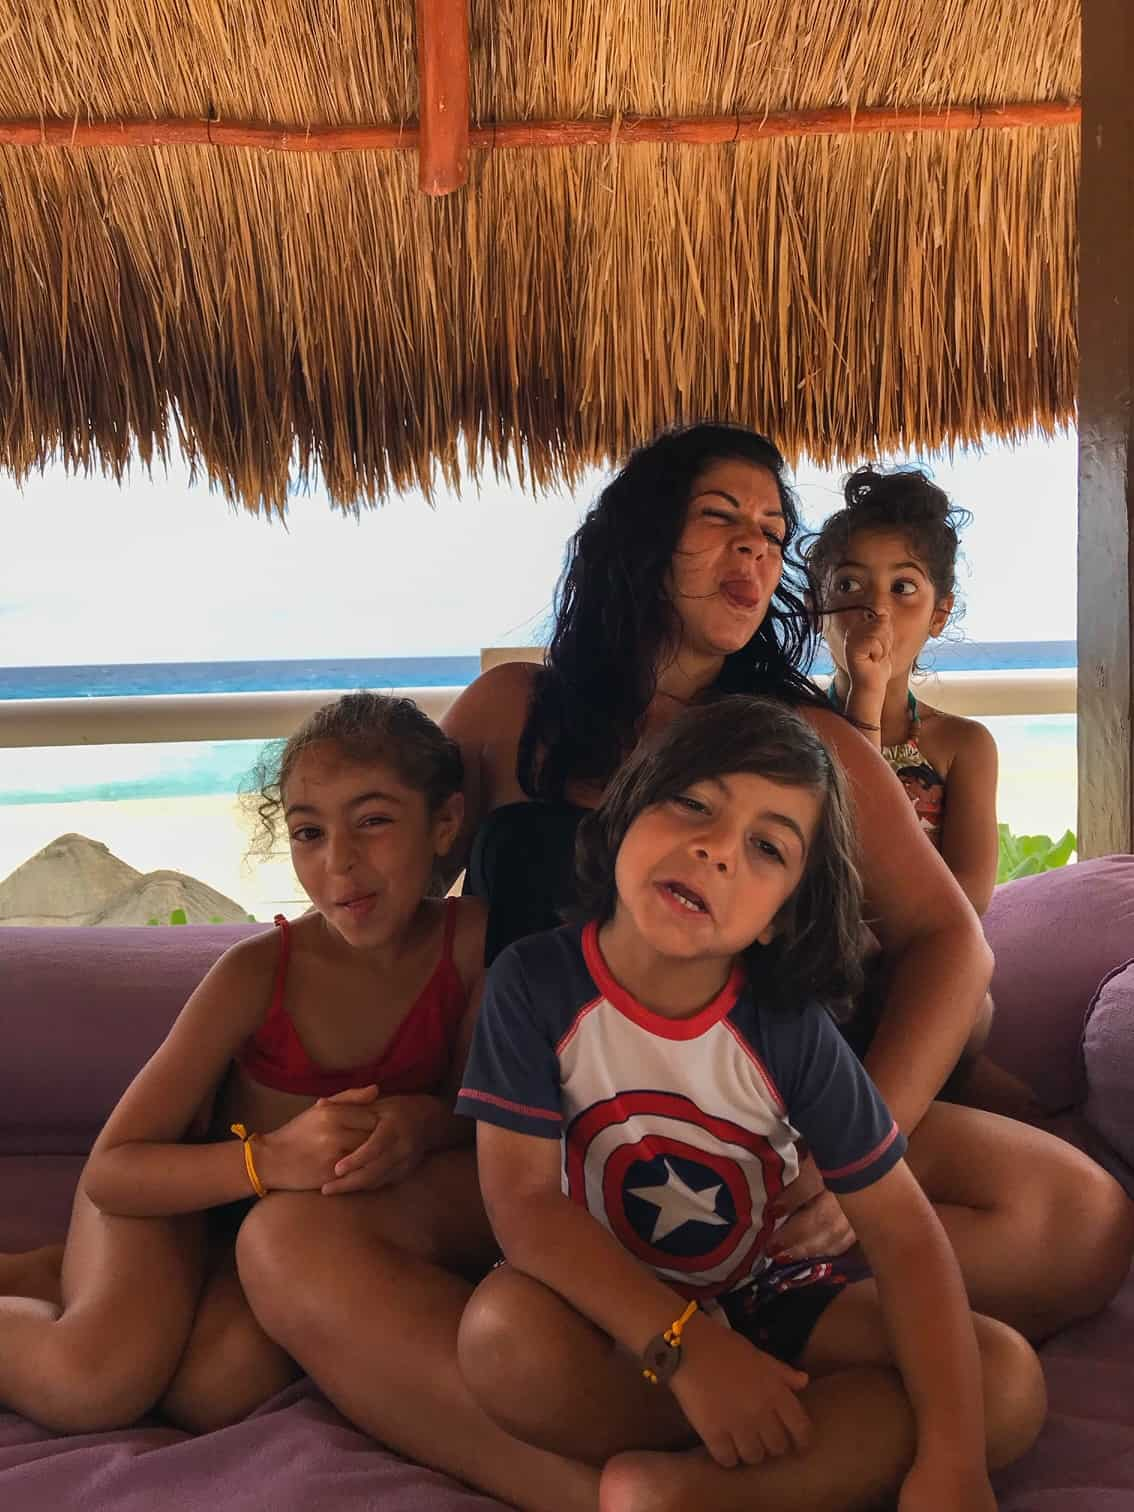 Pina making funny faces with her children at the beach